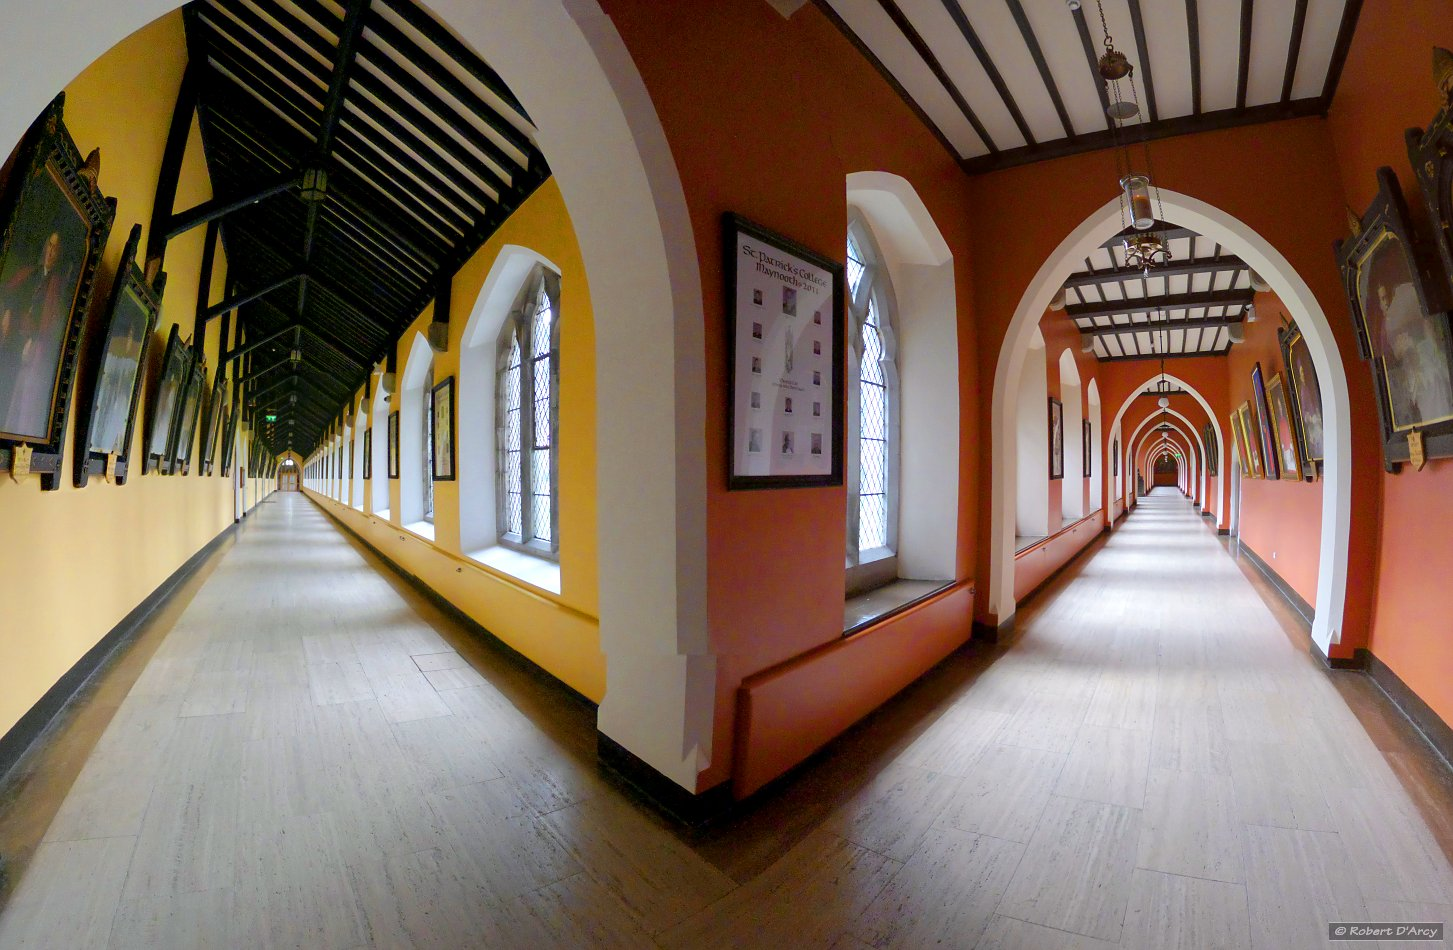 The corridors of St. Patrick's House - stereographic projection